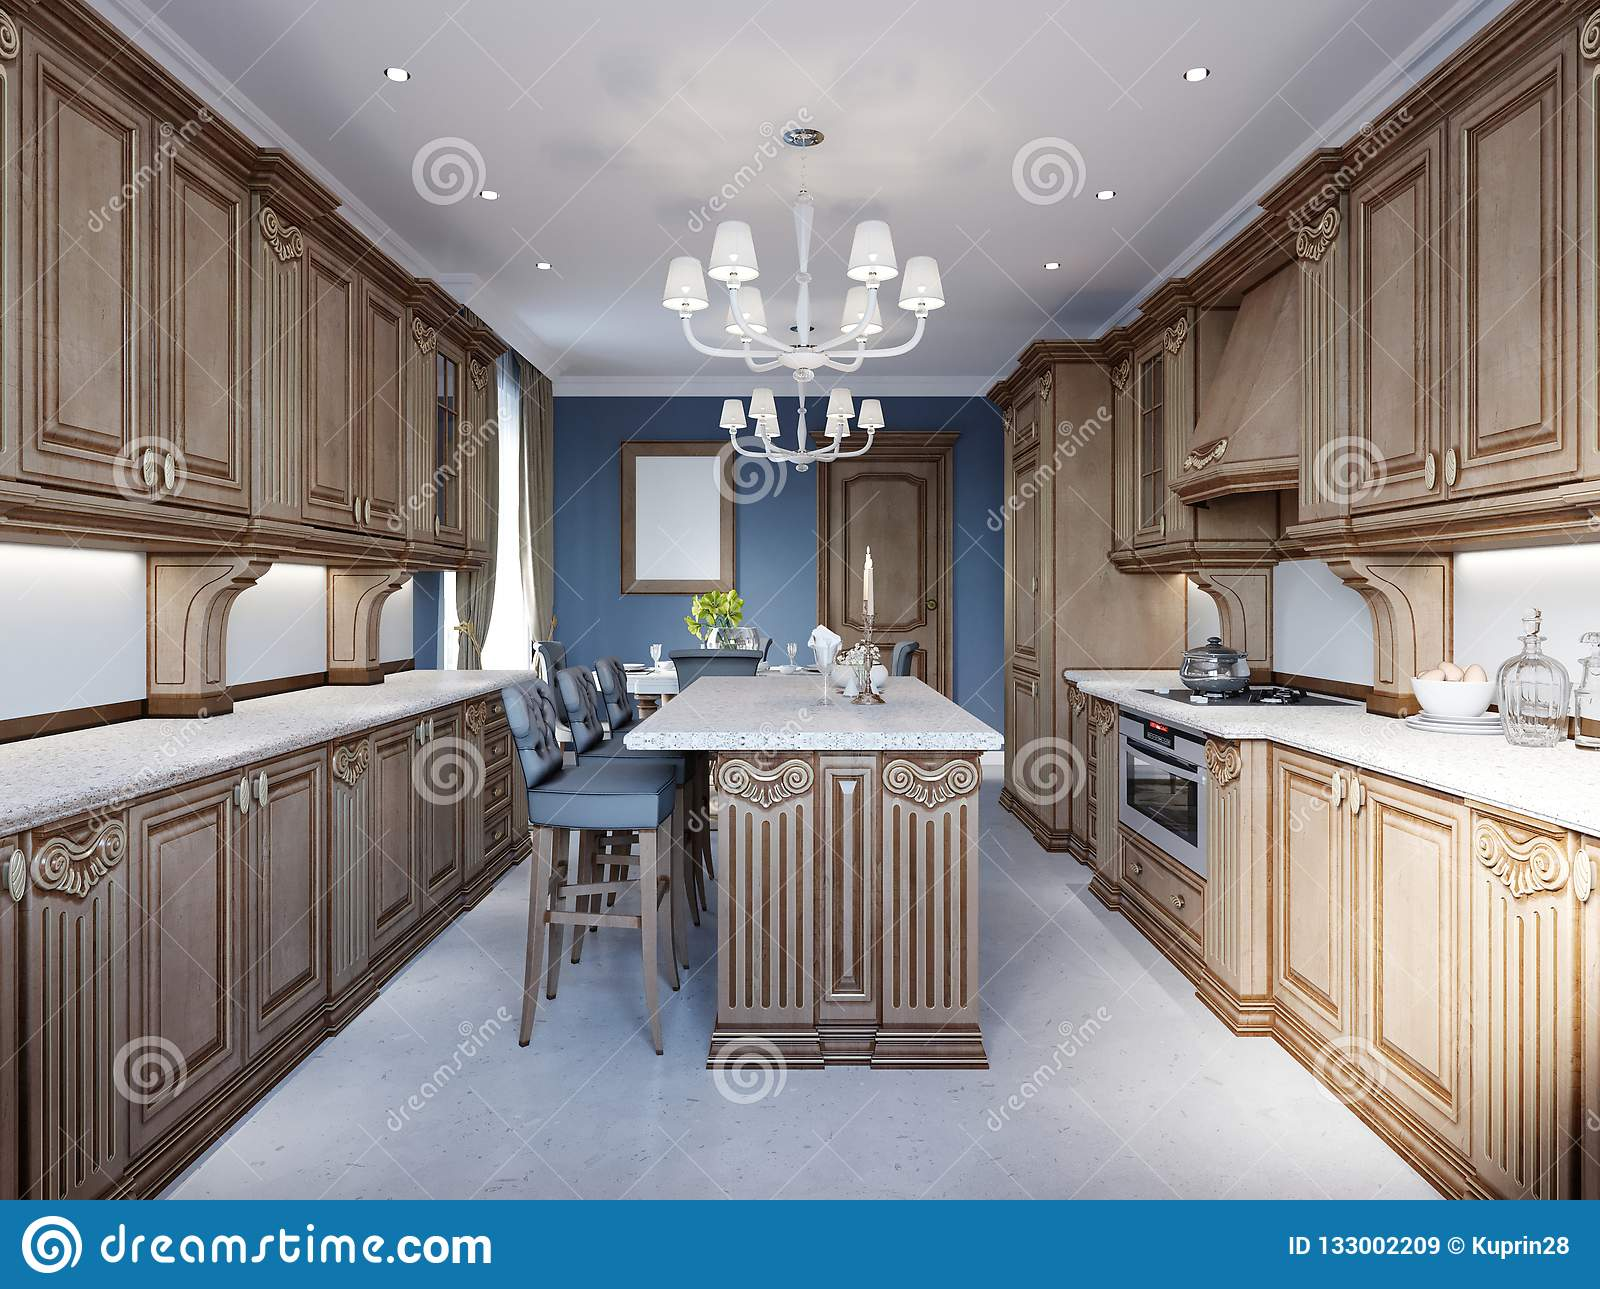 Kitchen And Dining In Luxury Home With Cherry Wood Cabinets Stock Illustration Illustration Of Design Cherry 133002209